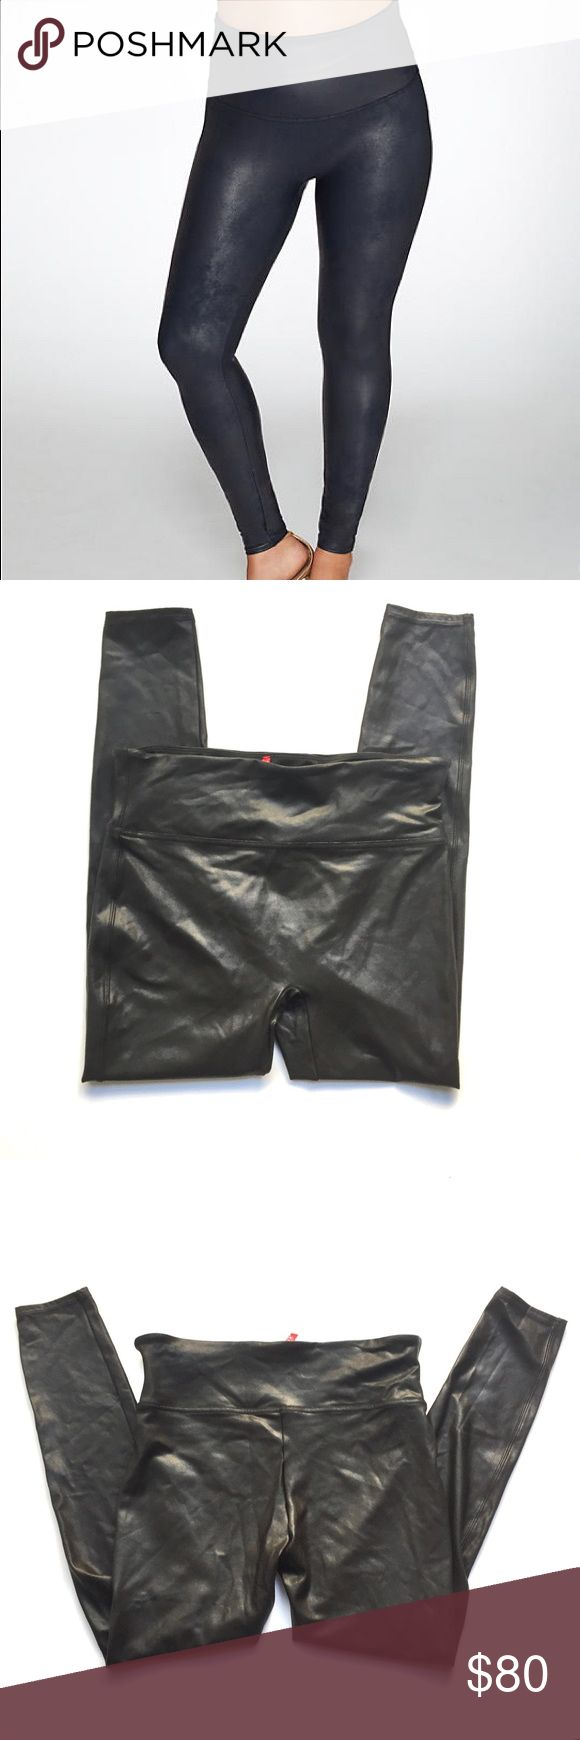 """🆕NWOT Spanx Black Faux Leather Leggings 1X Authentic Spanx brand (NOT Assets or any other lower-end line) leggings.  Floor model that has been tried on, no flaws. Slimming faux leather leggings that create an edgy look. Streamlined fit - perfect to tuck into boots. Faux leather textured stretch microfiber. I own 3 pairs of these and wear them ALL the time-they're so comfy and flattering! Size 1X, approx 15.25""""'across waist lying flat, 11"""" rise, 28"""" inseam. Model photo credit Bare…"""